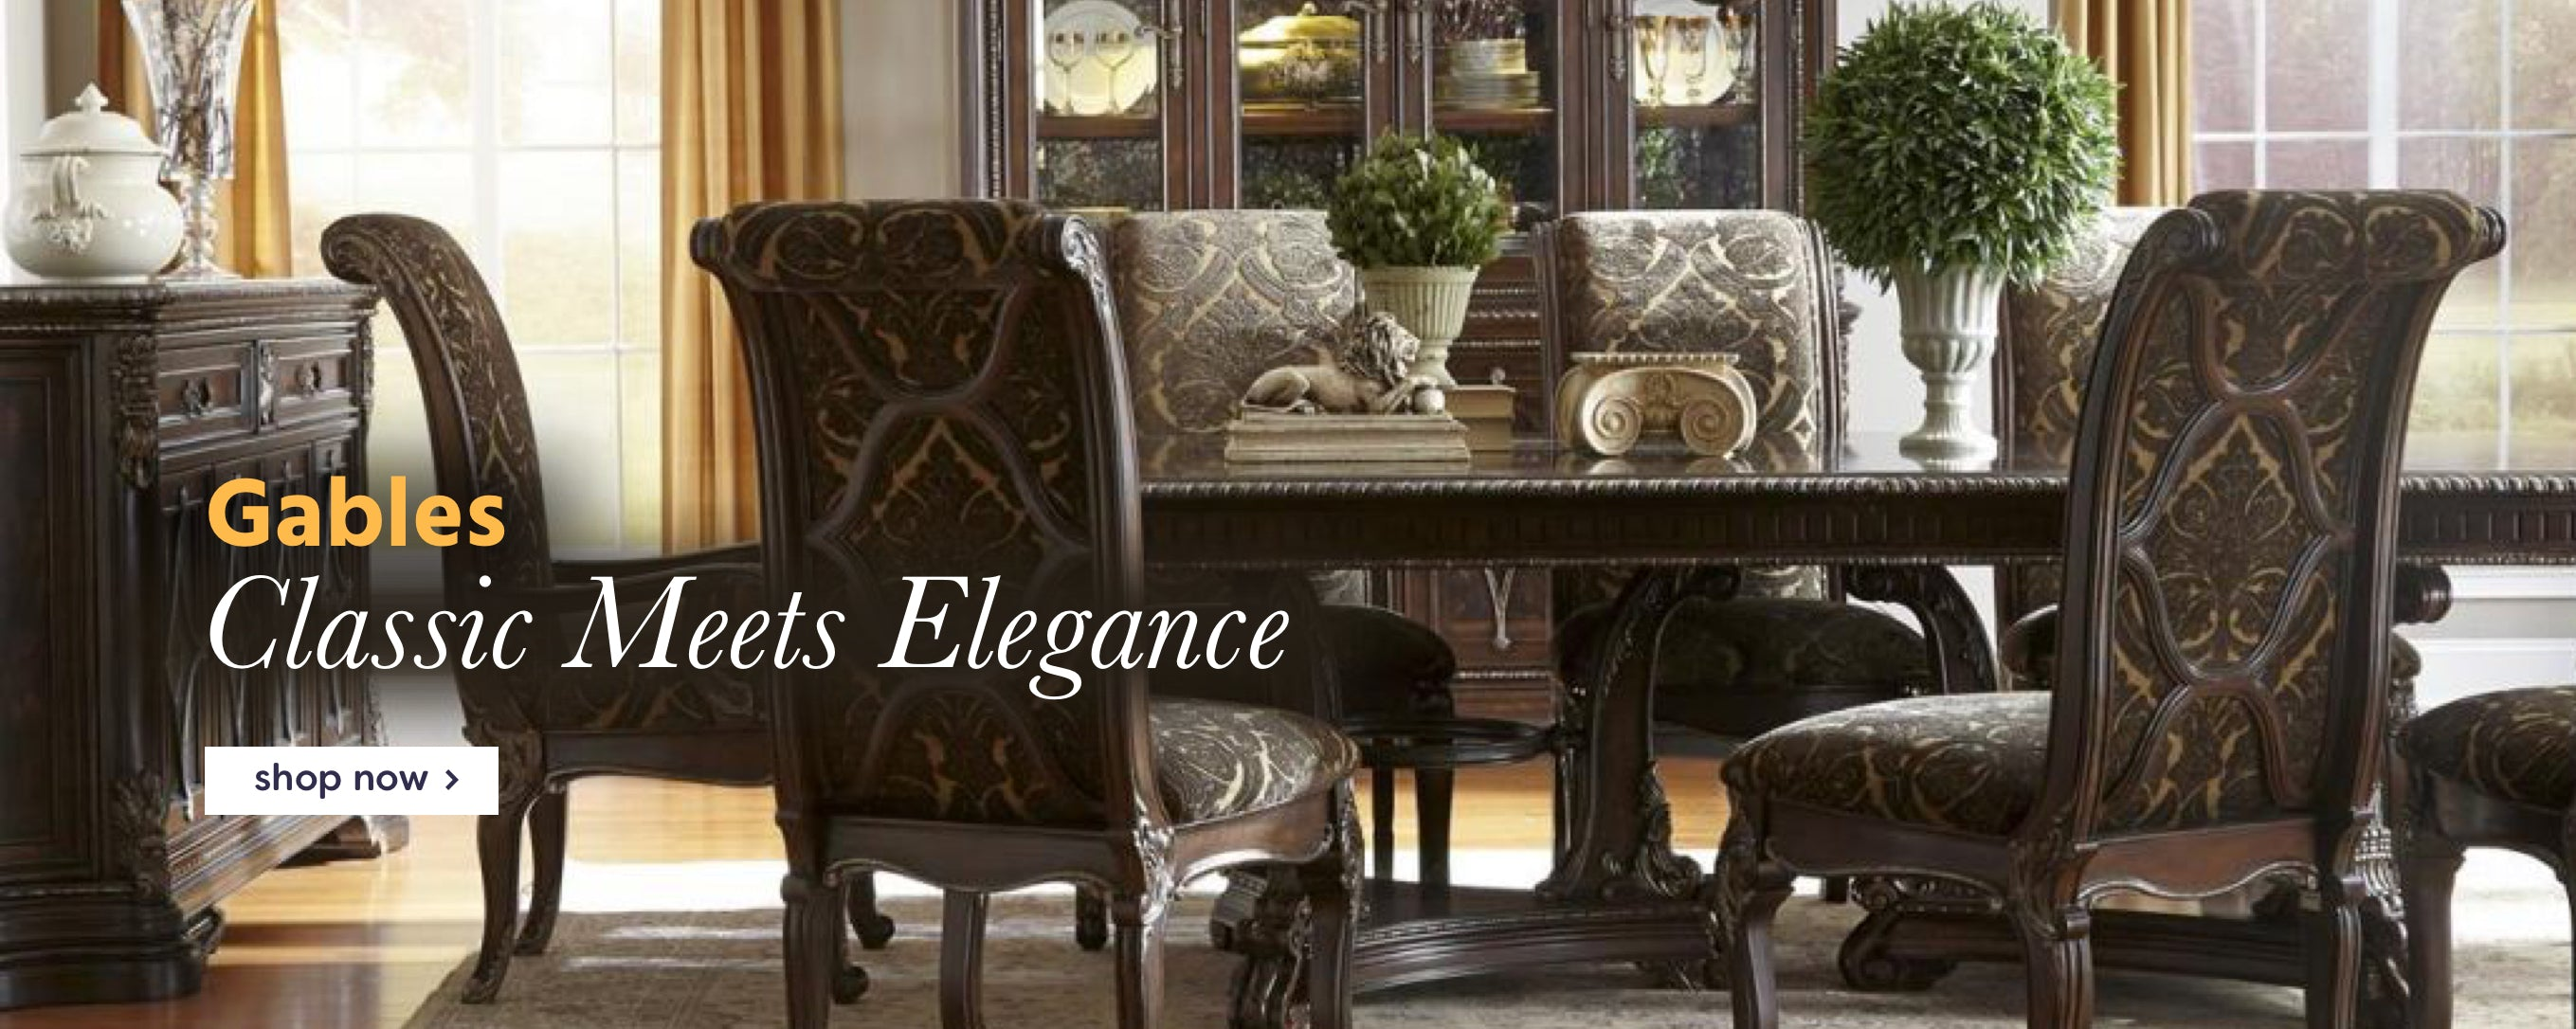 Gables Dining Table Set